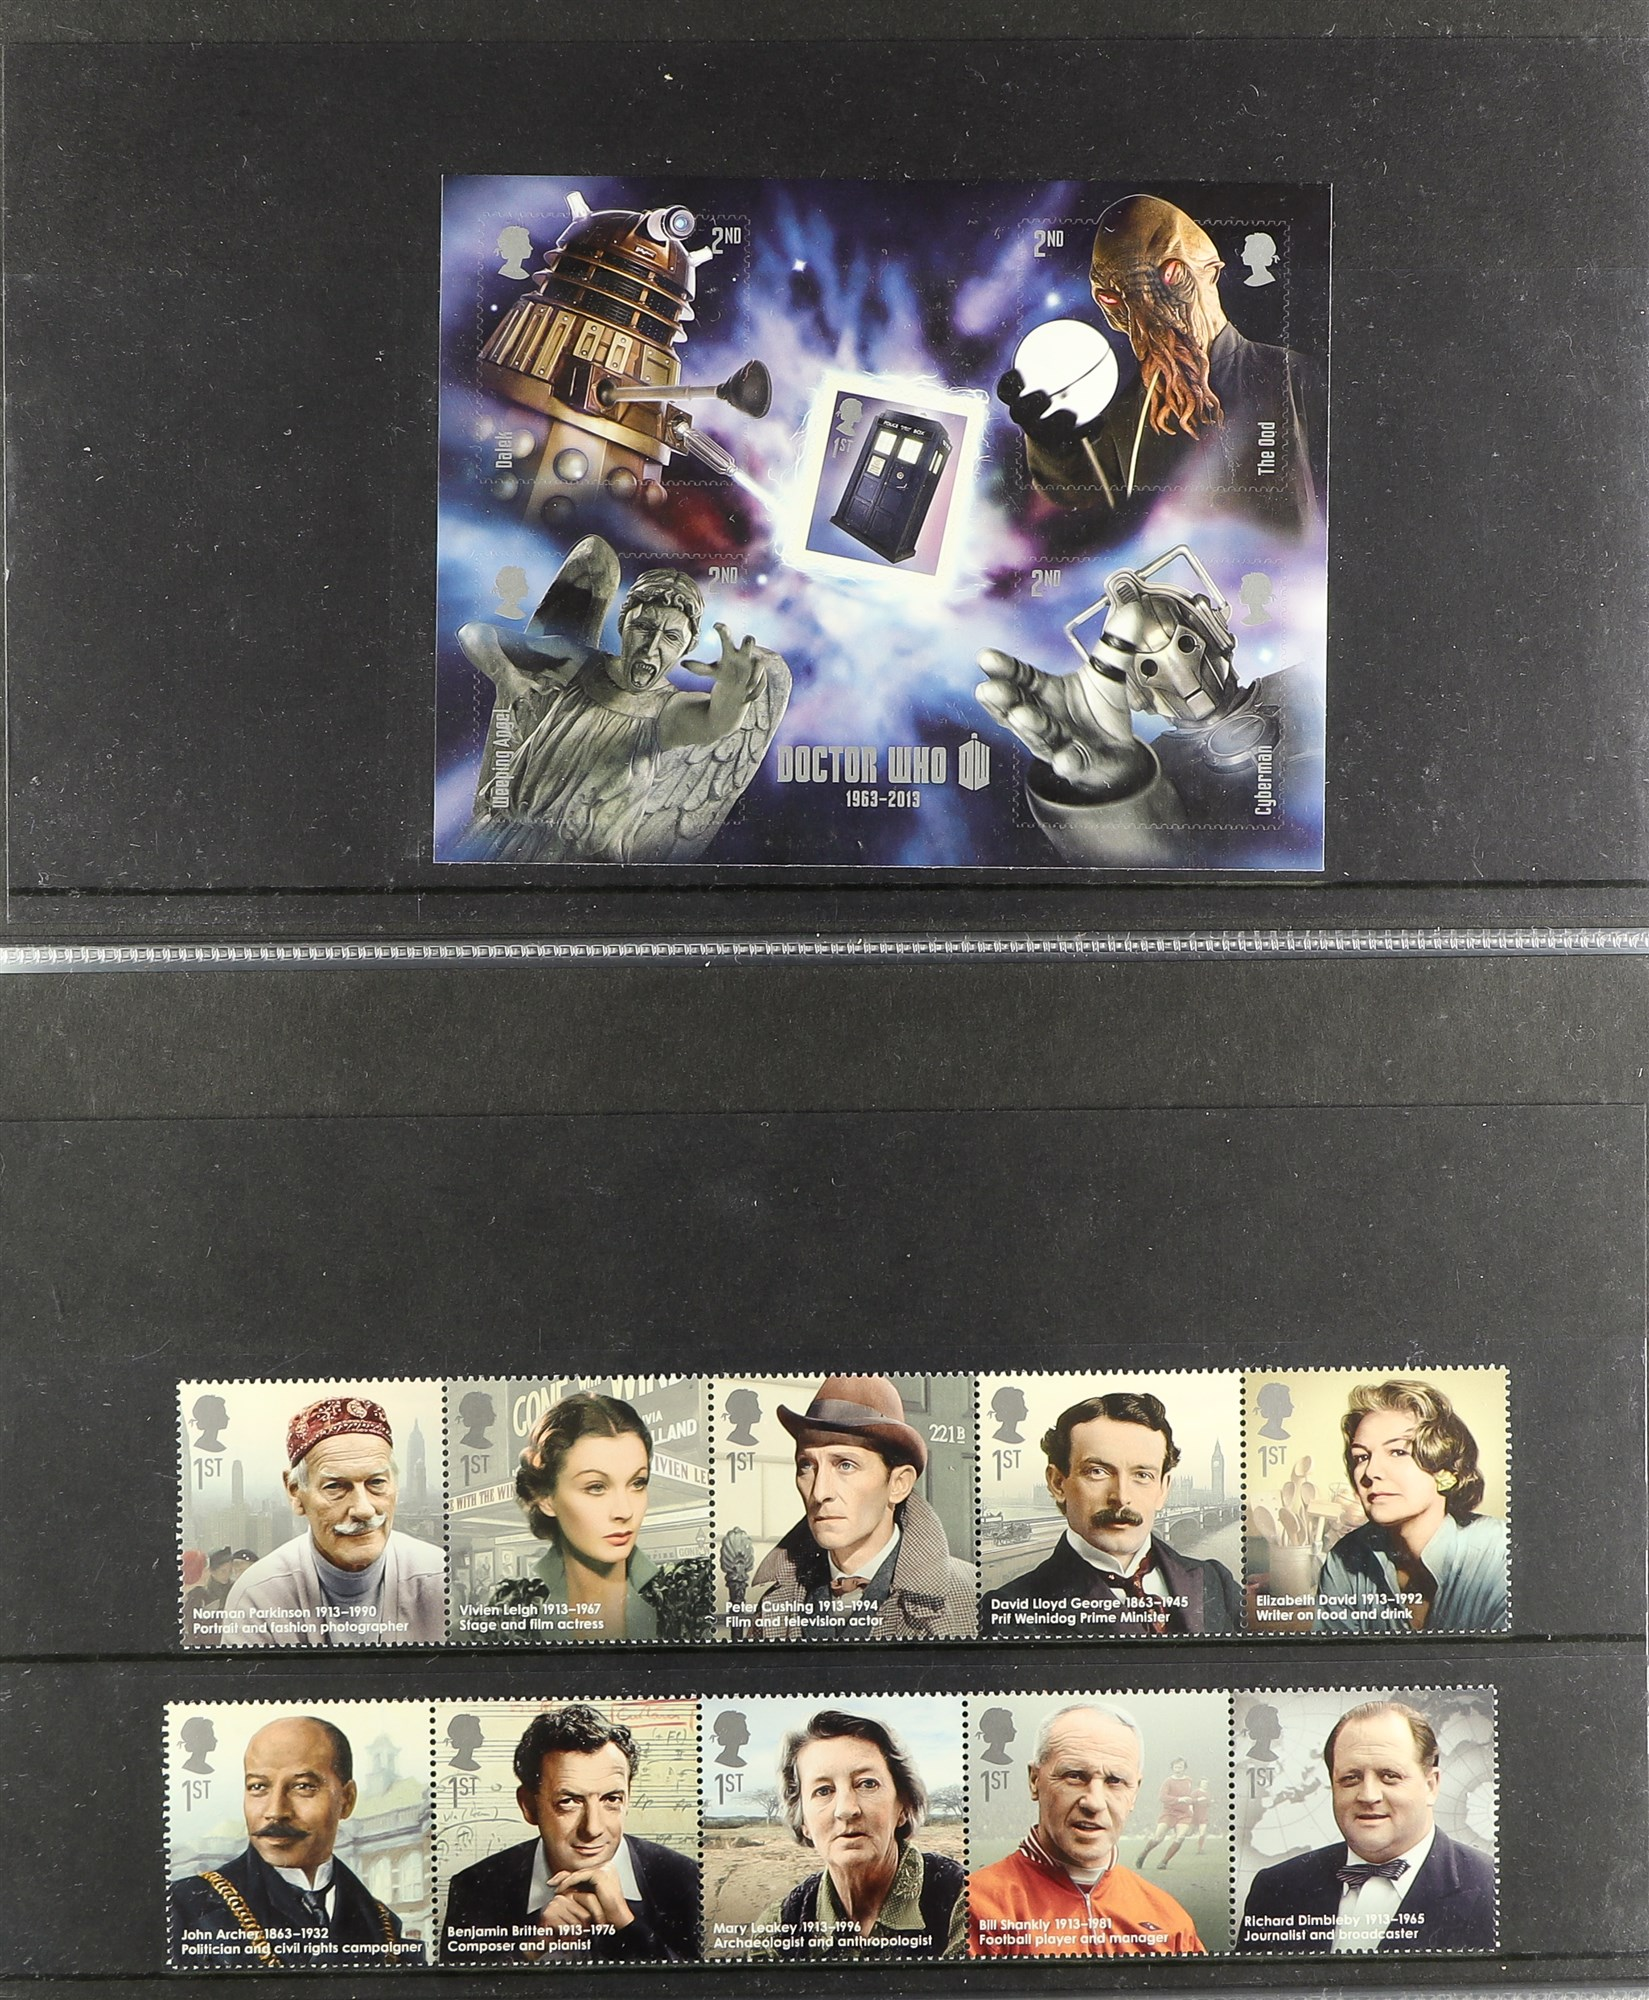 GB.ELIZABETH II 2013 - 2020 COMPREHENSIVE MINT COLLECTION which includes the commemorative stamp - Image 3 of 8